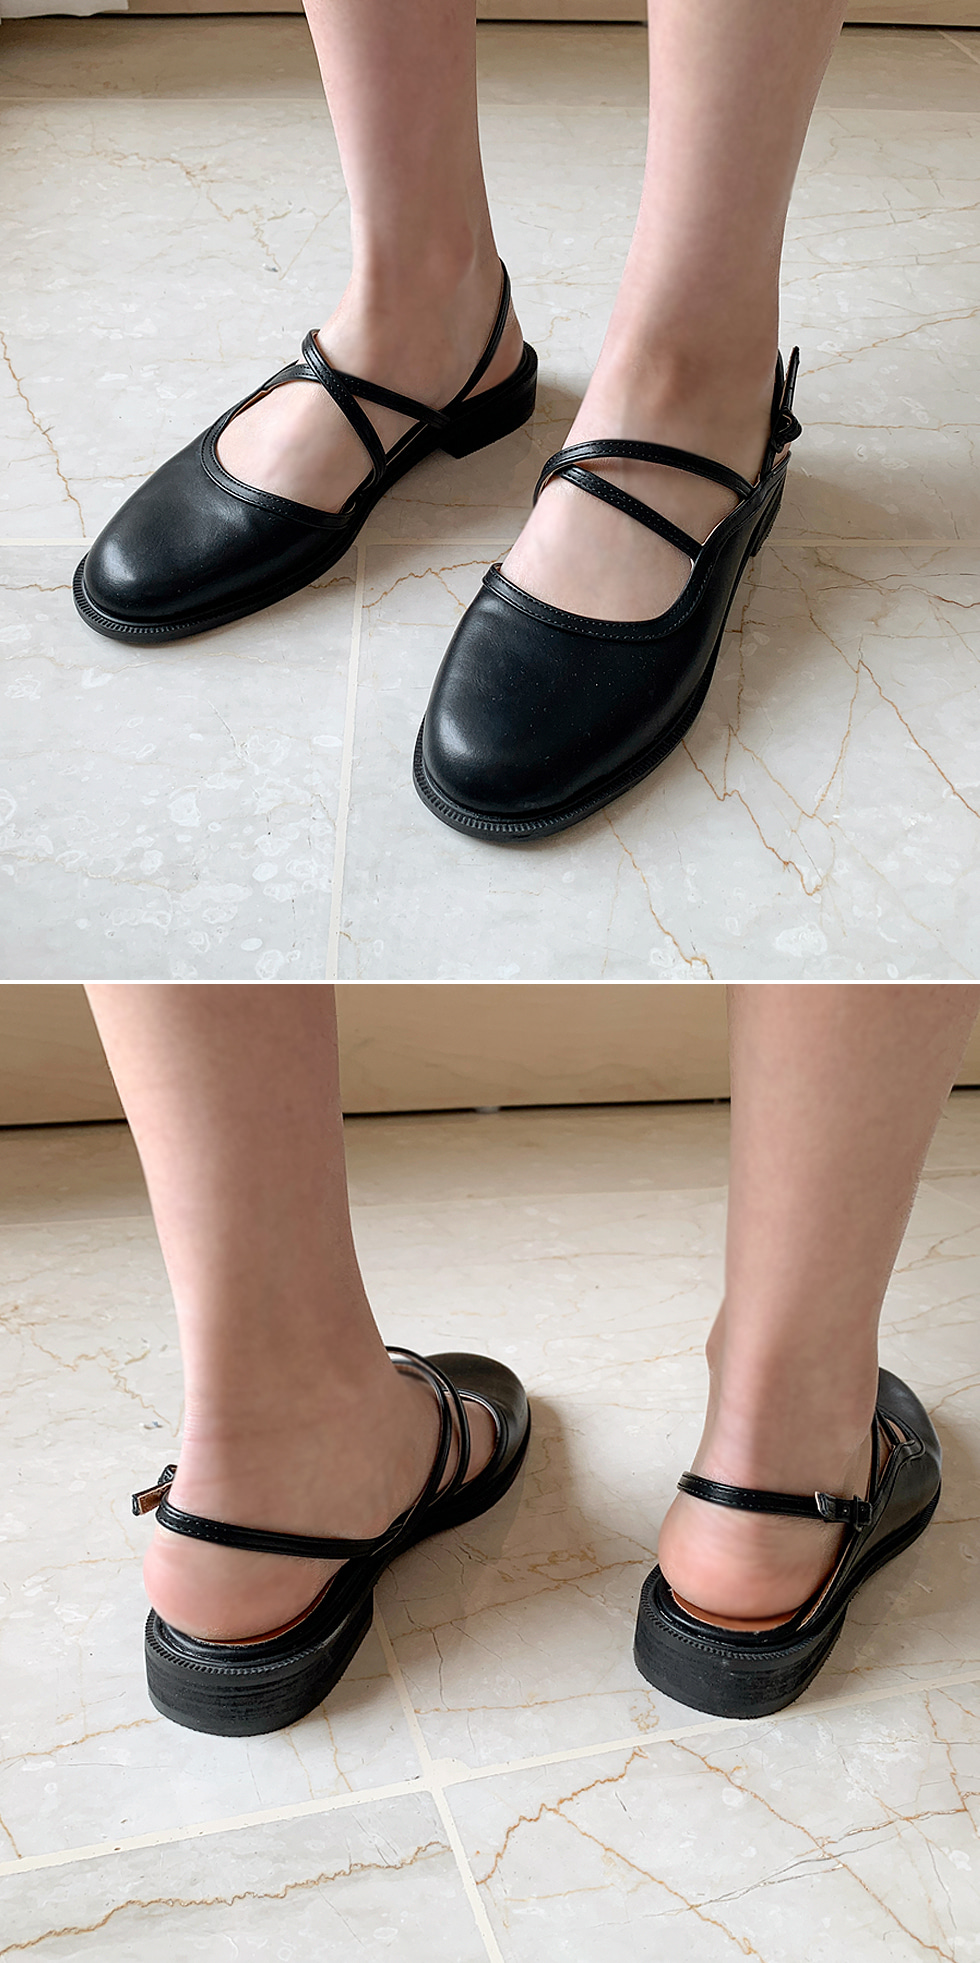 Seed strap sandals